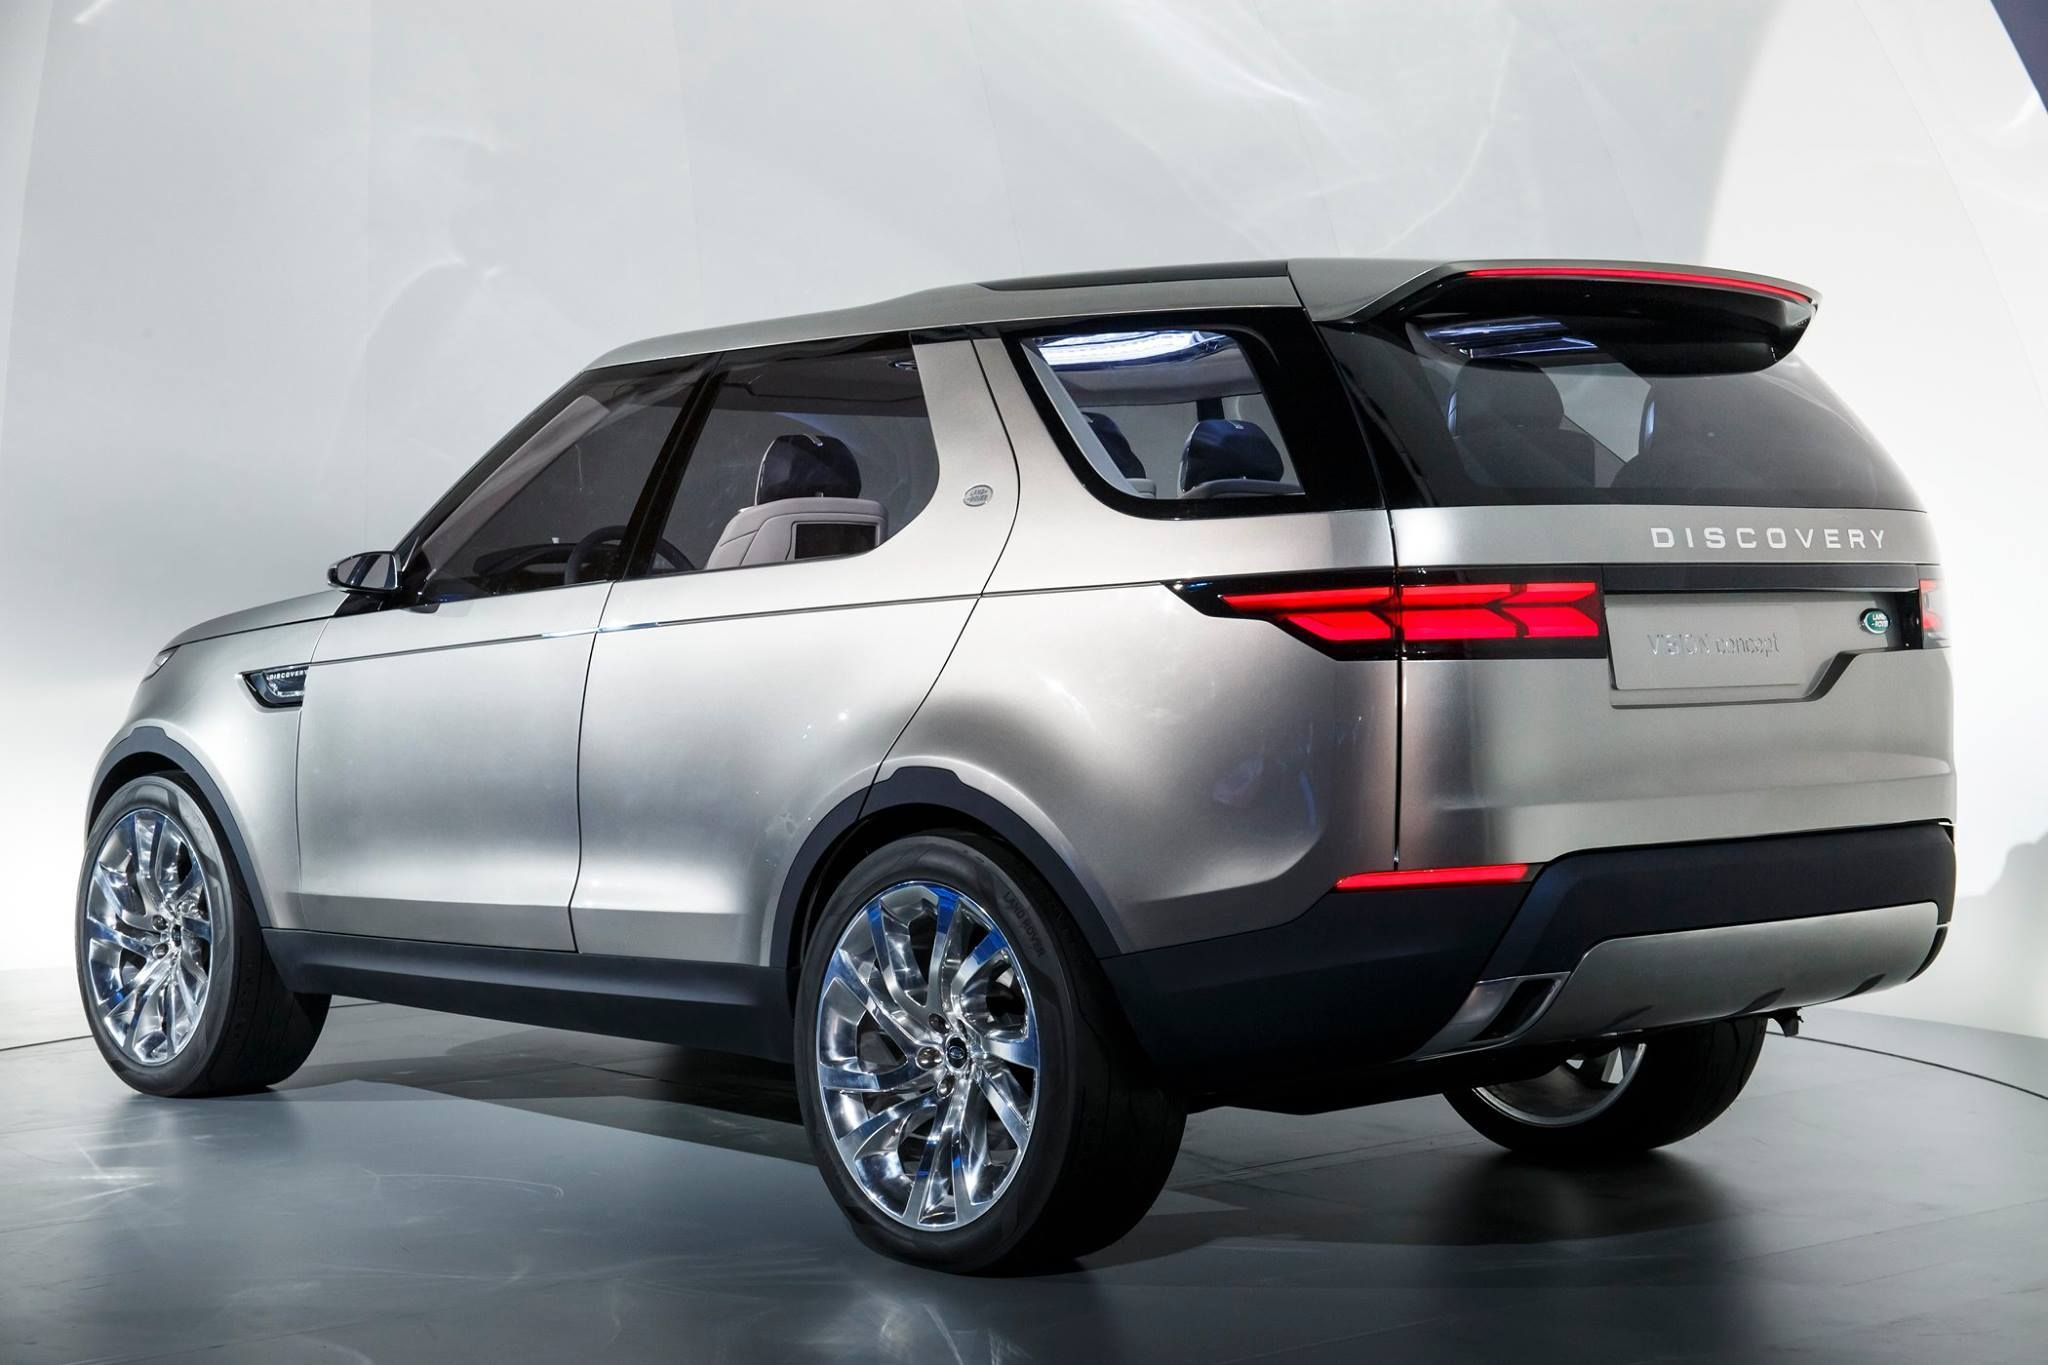 www.potzwonen.nl new discovery landrover (With images